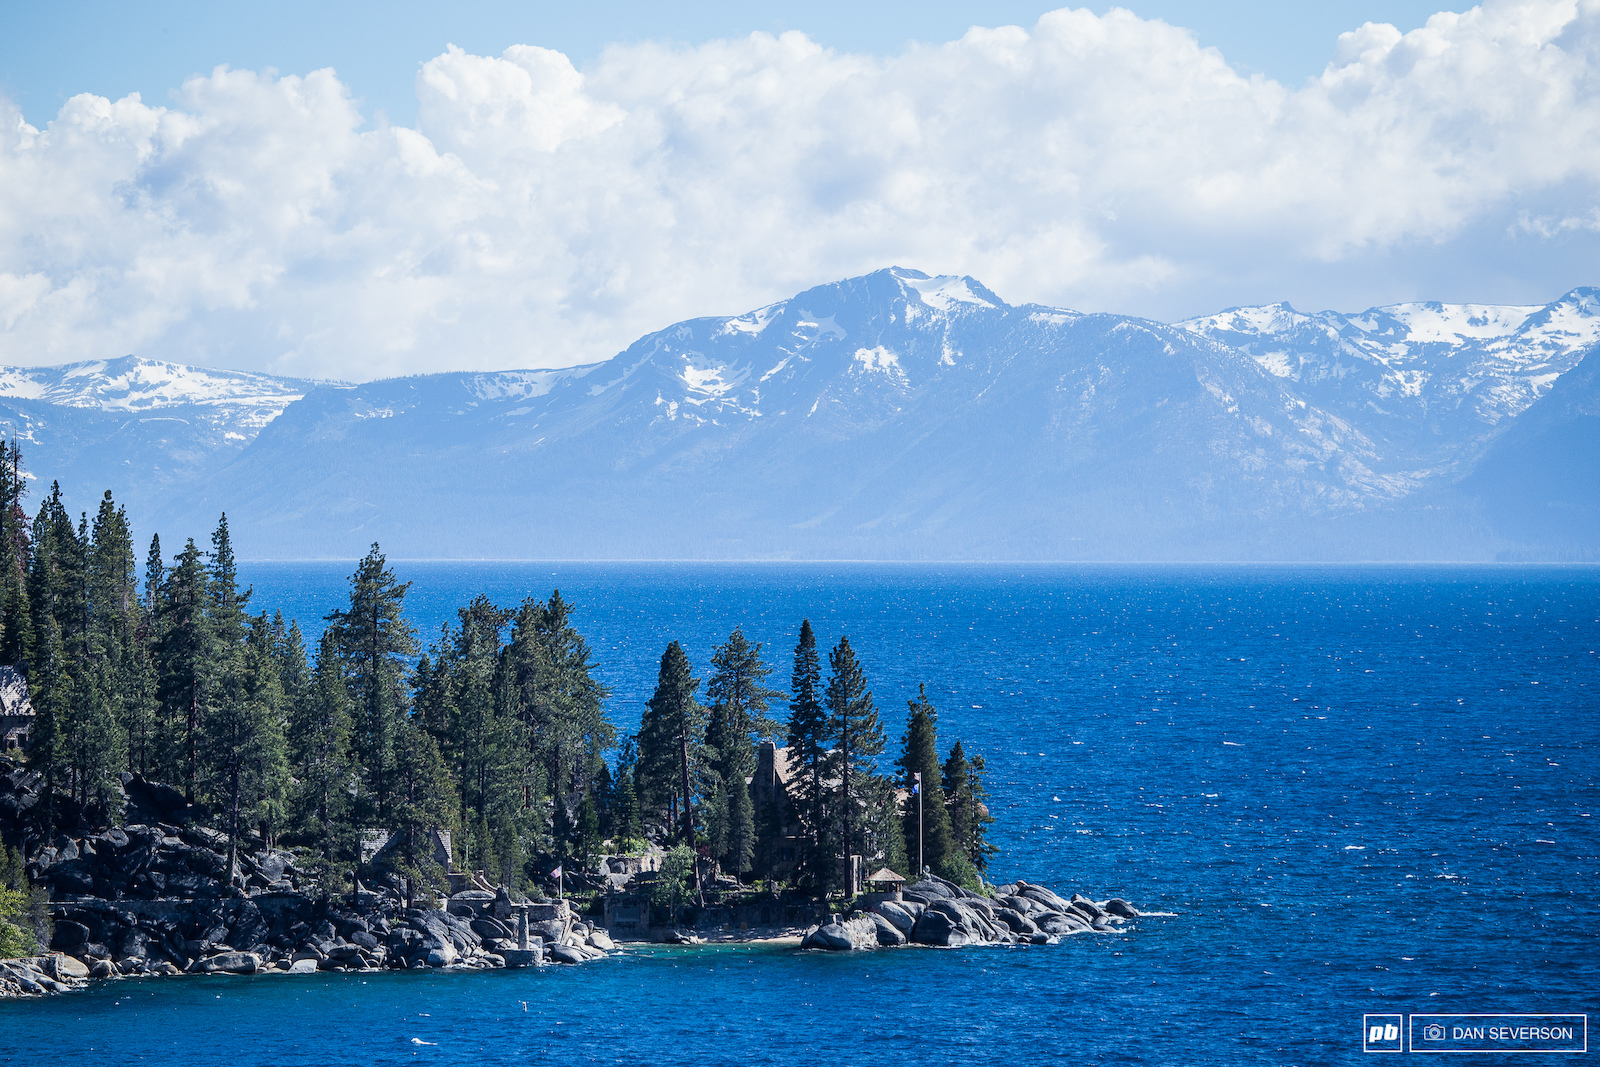 Hours of climbing were rewarded with stunning views of the Lake Tahoe area.